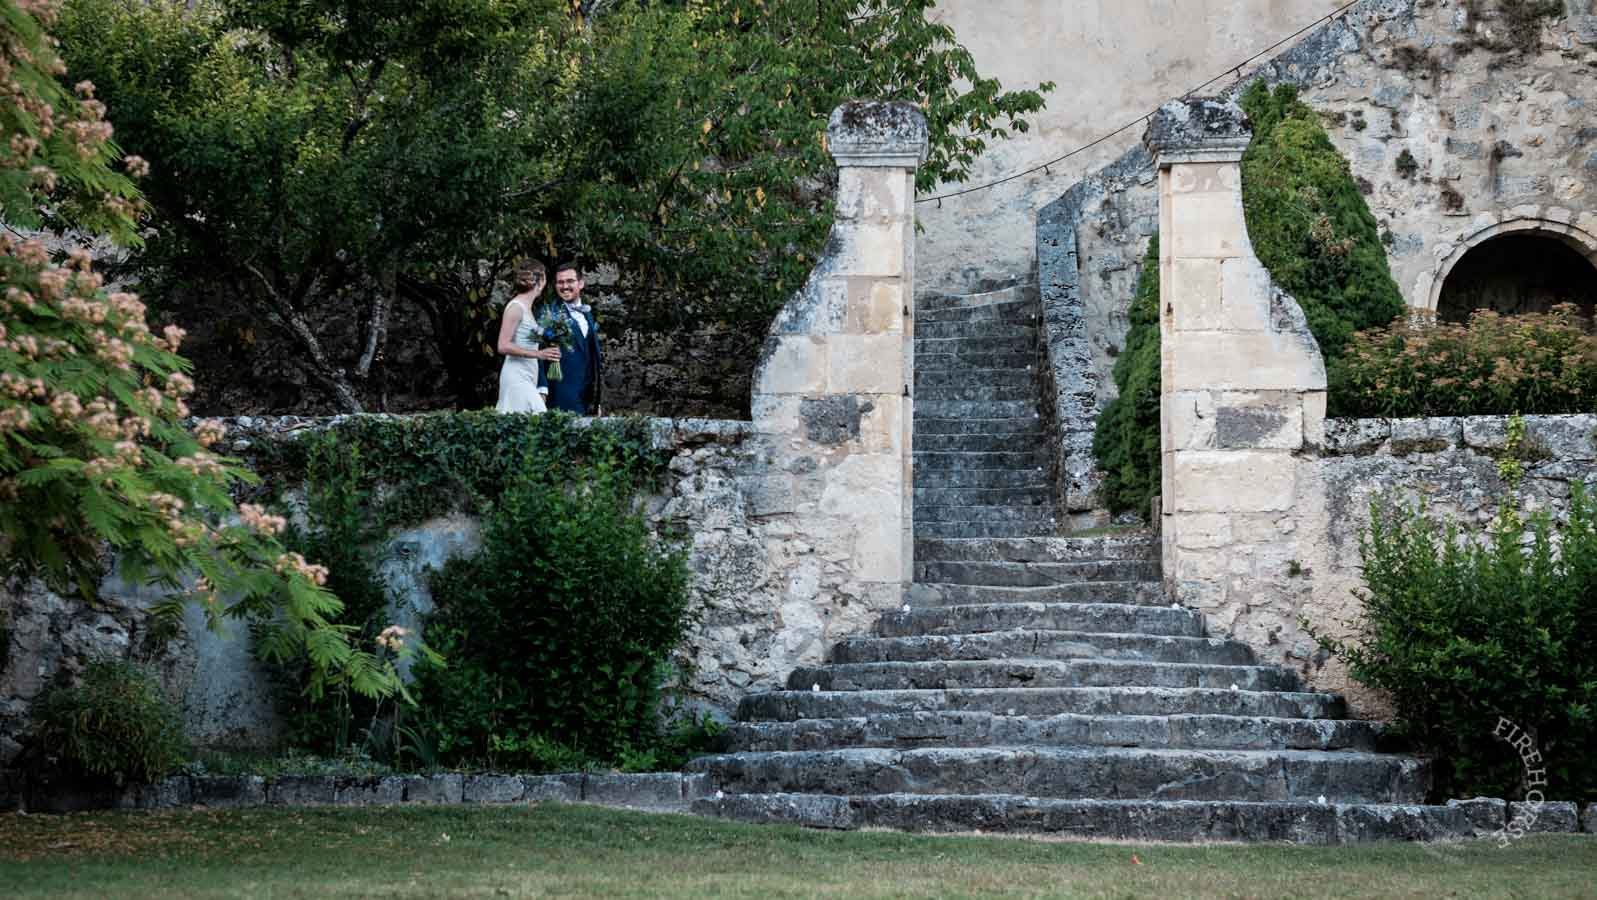 Lot-et-Garonne-Wedding-Photography-286